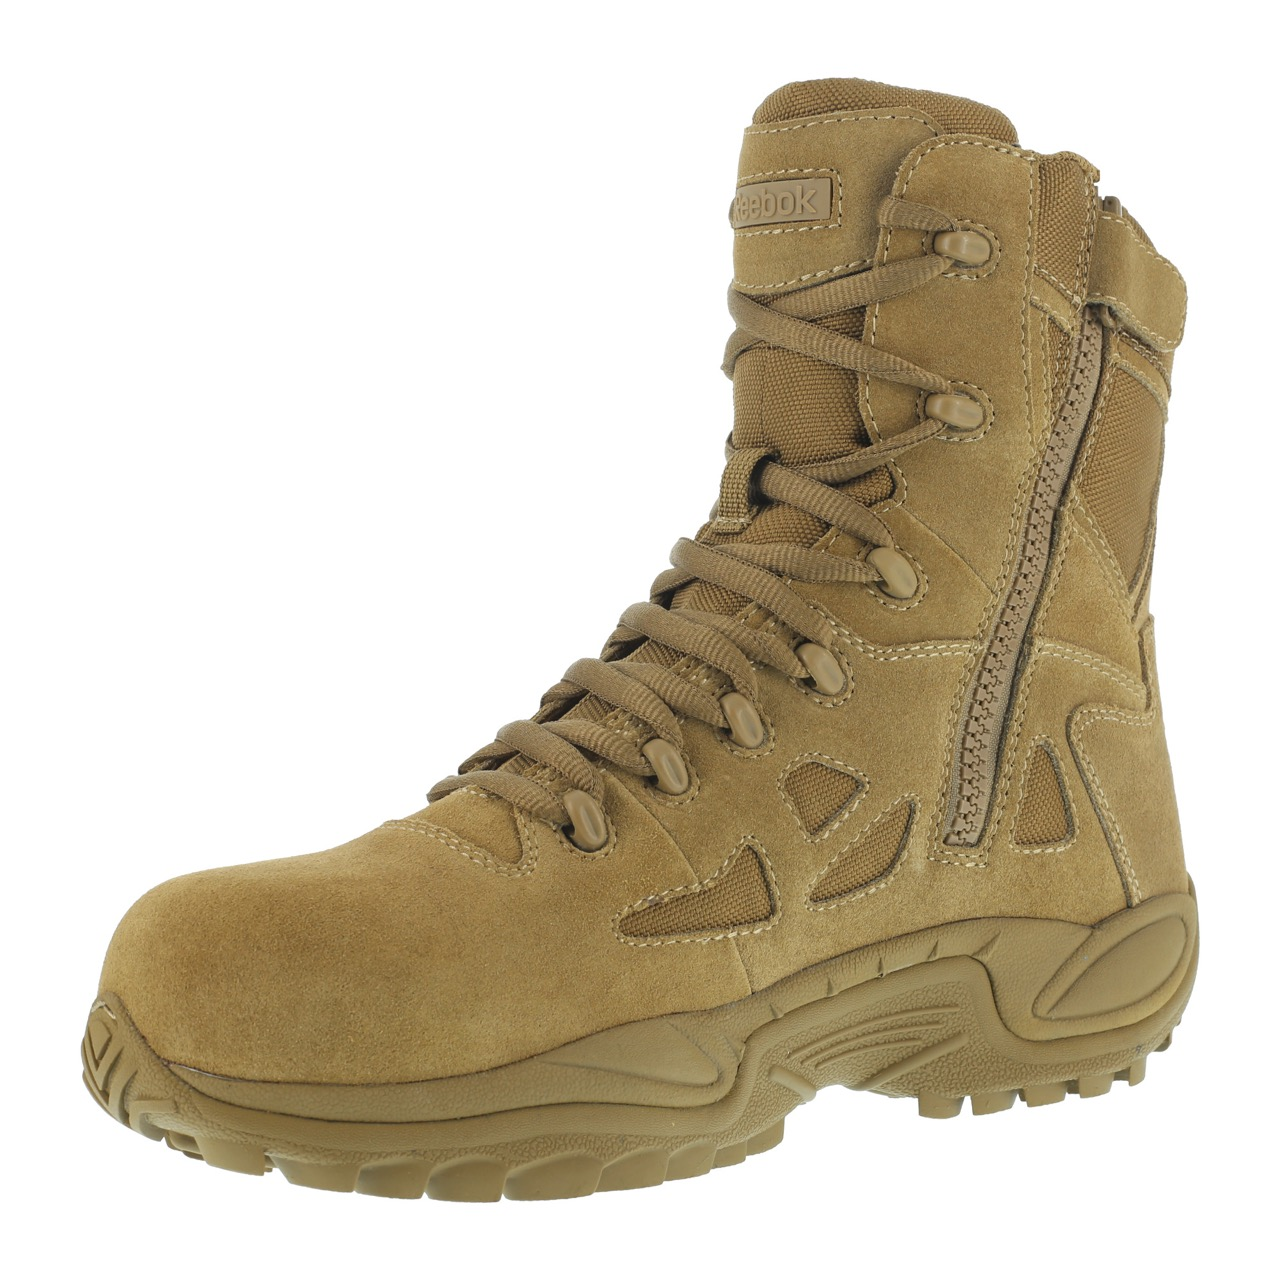 Reebok Rapid Response Coyote Duty Boots Rb8850